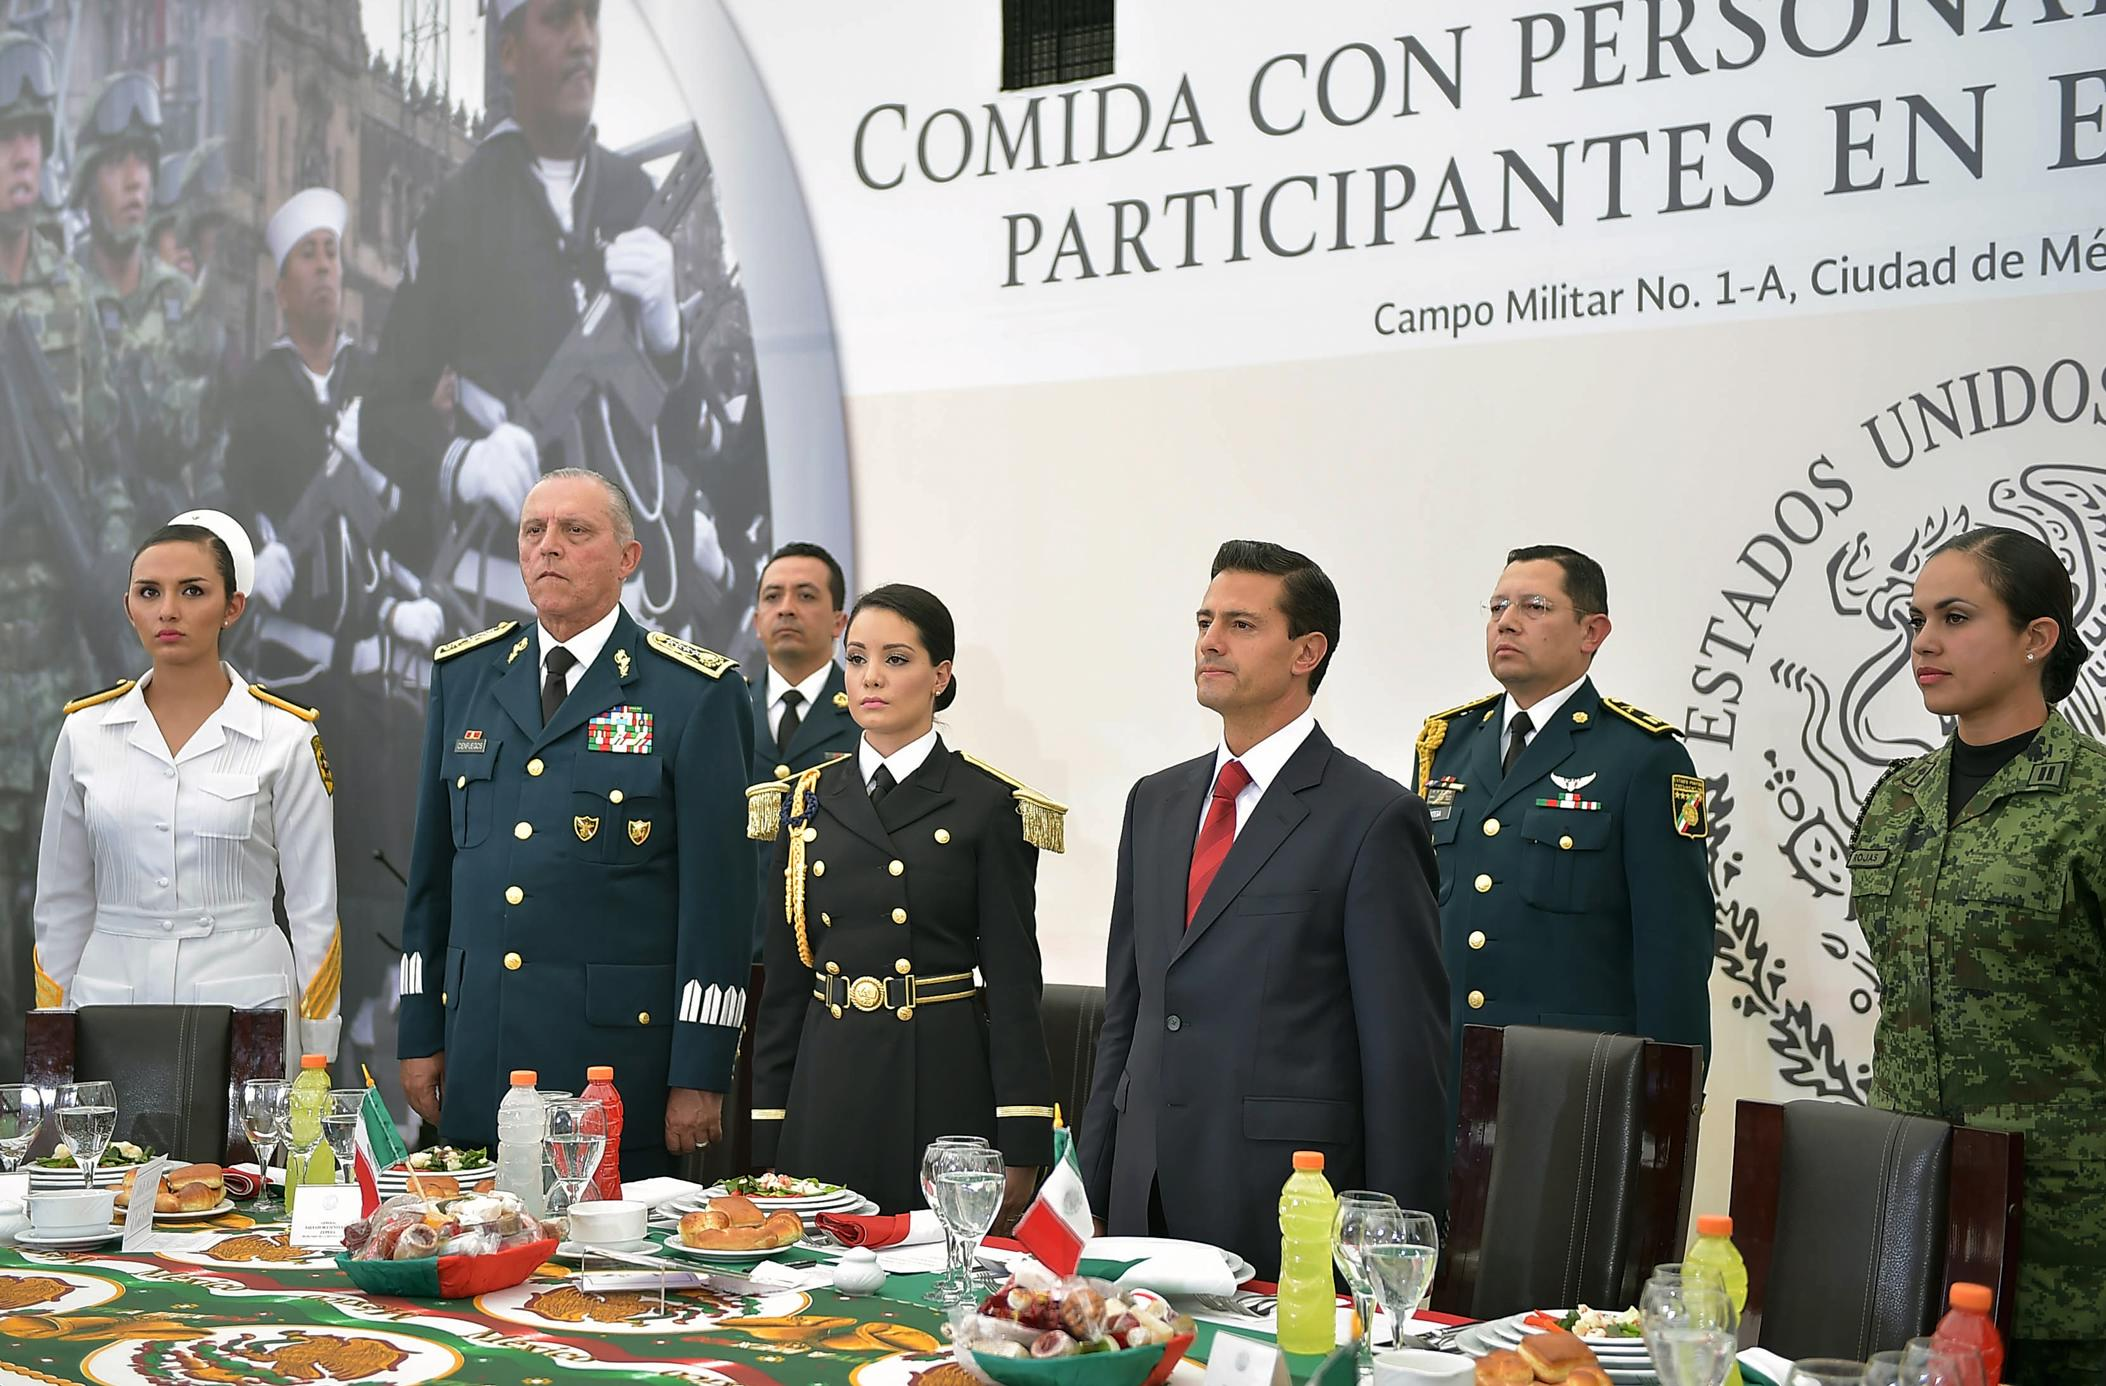 For the second consecutive year, the president socialized with members of the armed forces who participated in the military parade commemorating the anniversary of Mexican Independence.